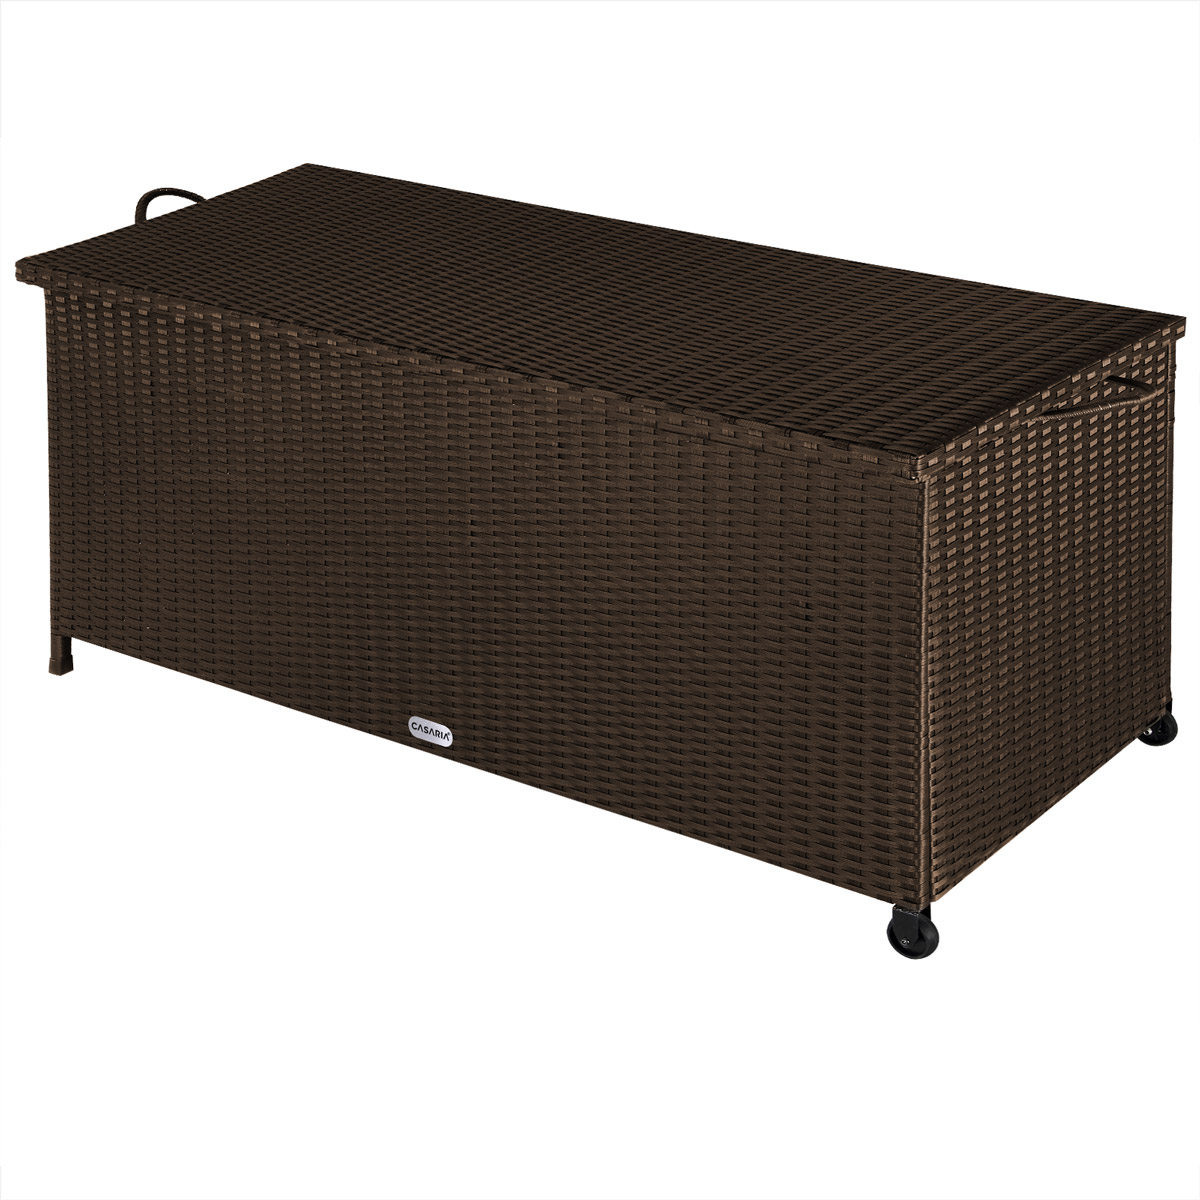 deuba auflagenbox polyrattan gartentruhe gartenbox kissenbox truhe auflage kiste ebay. Black Bedroom Furniture Sets. Home Design Ideas